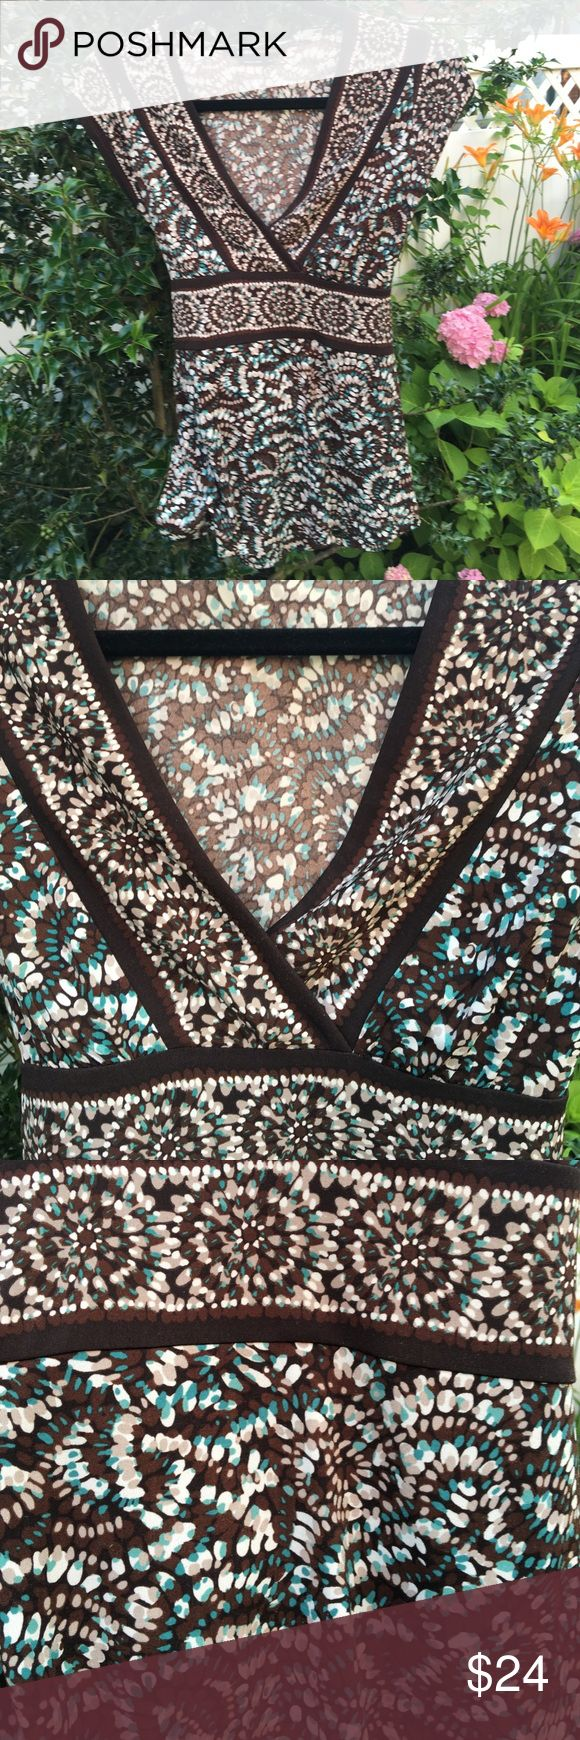 BCBG cap sleeve summer top Gorgeous brown and turquoise pattern, fun print, well-cared for. Tie back, v-neck style. BCBGMaxAzria Tops Tees - Short Sleeve